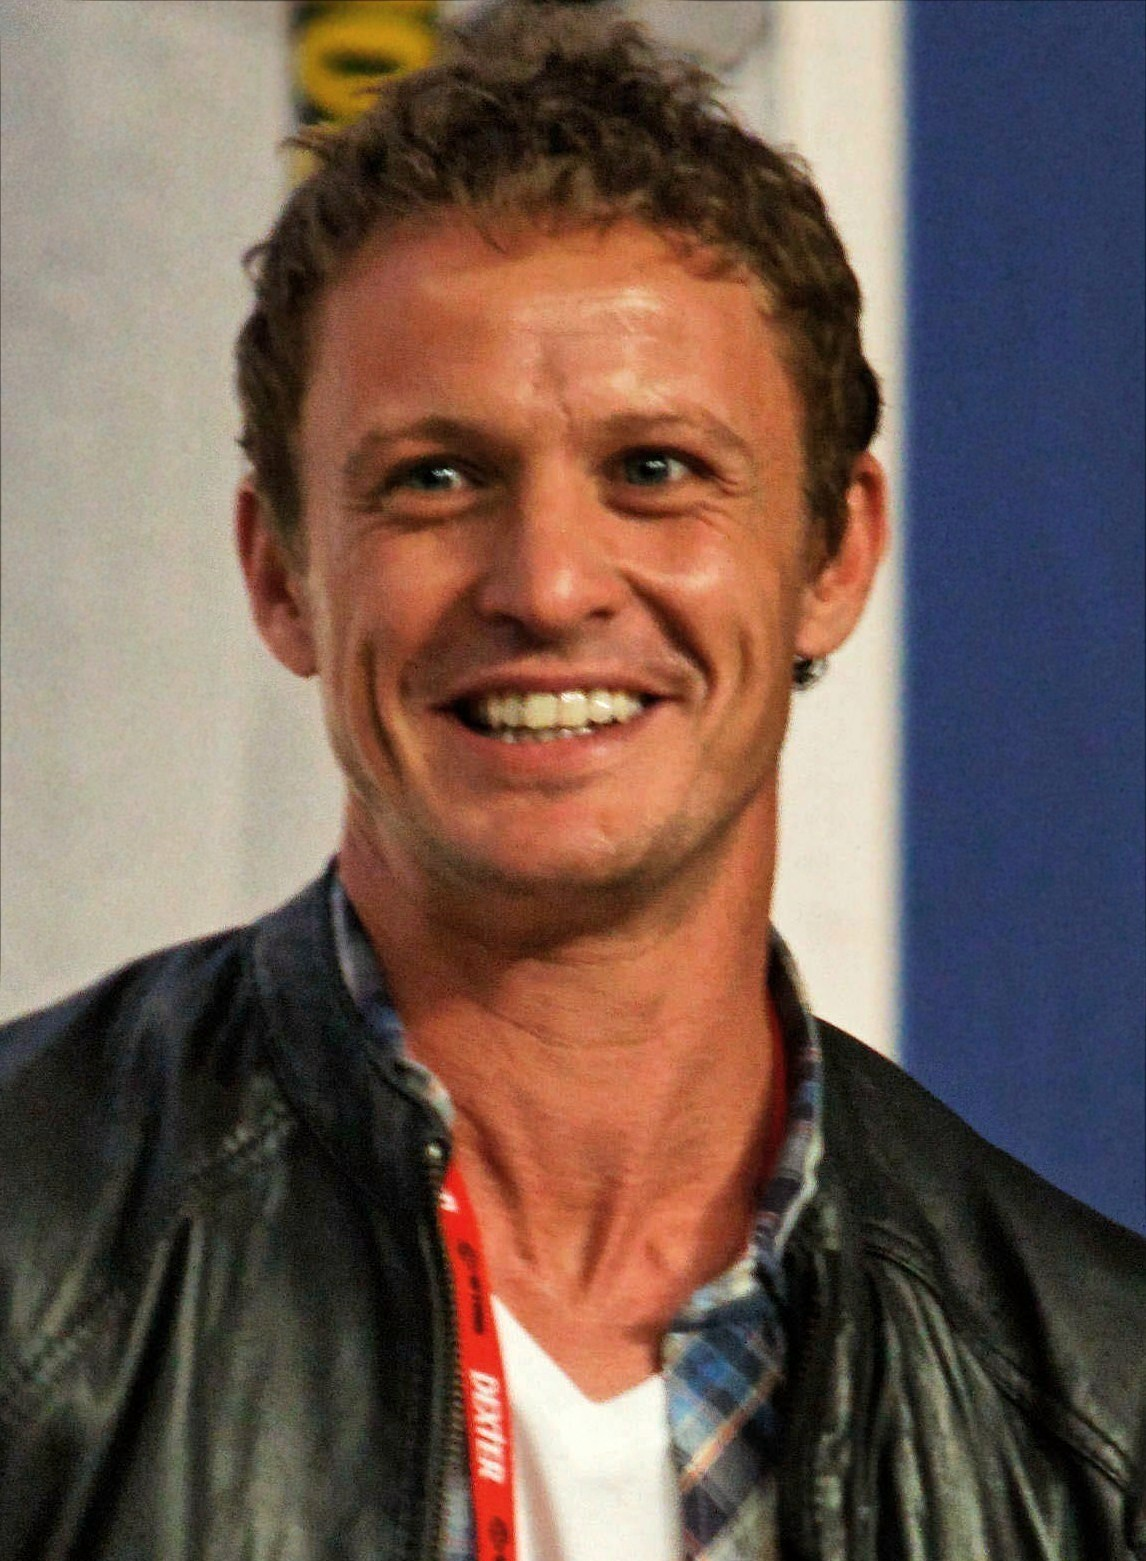 david lyons 2017david lyons 2017, david lyons tumblr, david lyons 2016, david lyons vk, david lyons tesla, david lyons relationship, david lyons instagram, david lyons, david lyons wife, david lyons married, david lyons facebook, david lyons imdb, david lyons height, david lyons twitter, david lyons interview, revolution david lyons, david lyons and tracy spiridakos, david lyons wiki, david lyons sea patrol, david lyons carly pope